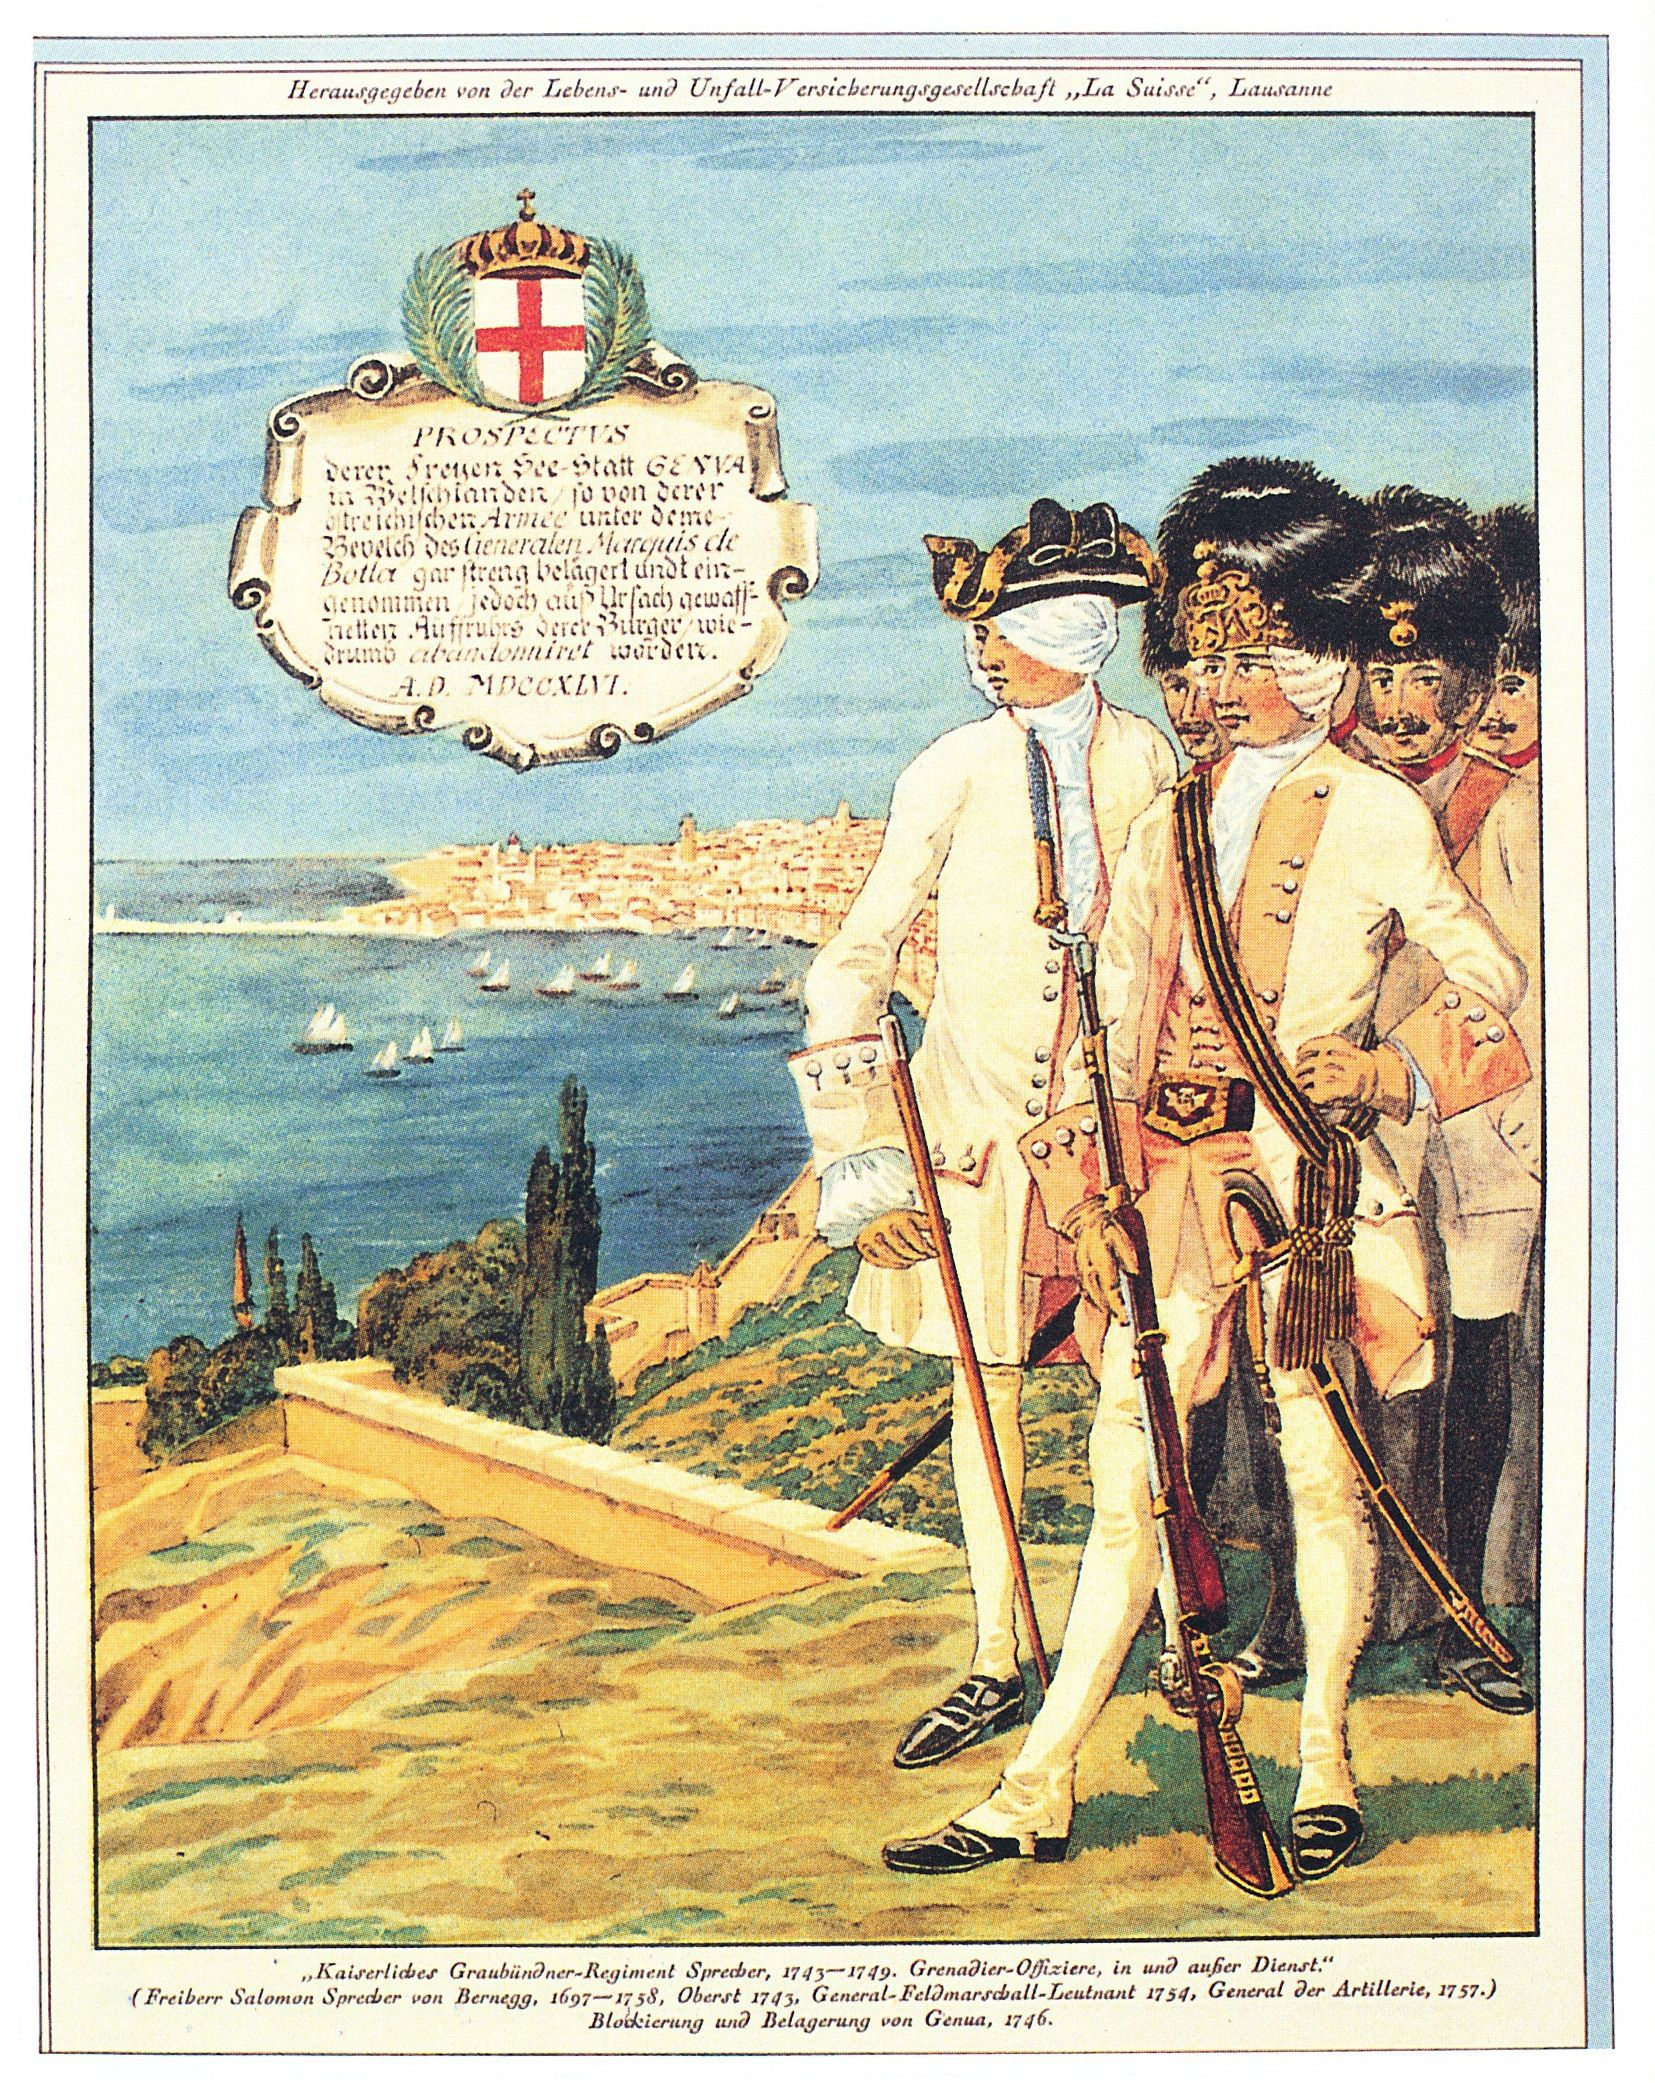 Imperial Austria: Grenadier Officers of the Regiment von Sprecher at Genoa 1746. Colonel Salomon Sprecher von Bernegg had recruited this Tenant Regiment in the Grisons during the Austrian War of Succession in 1743 and mustered them in Merano and Feldkirch.